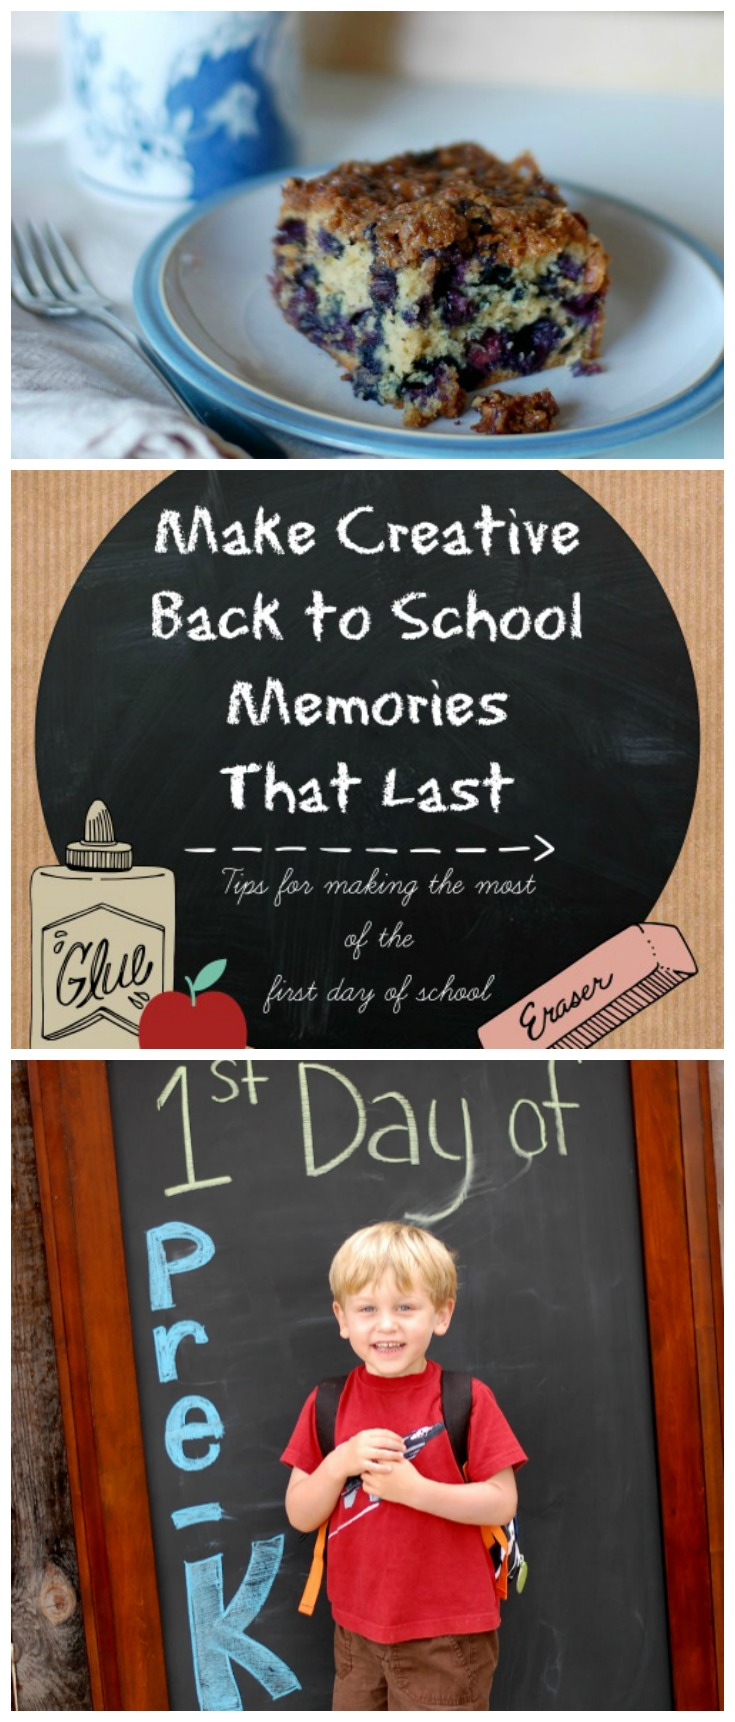 How do you make creative back to school memories that last? We're sharing a few of our favorite ways!